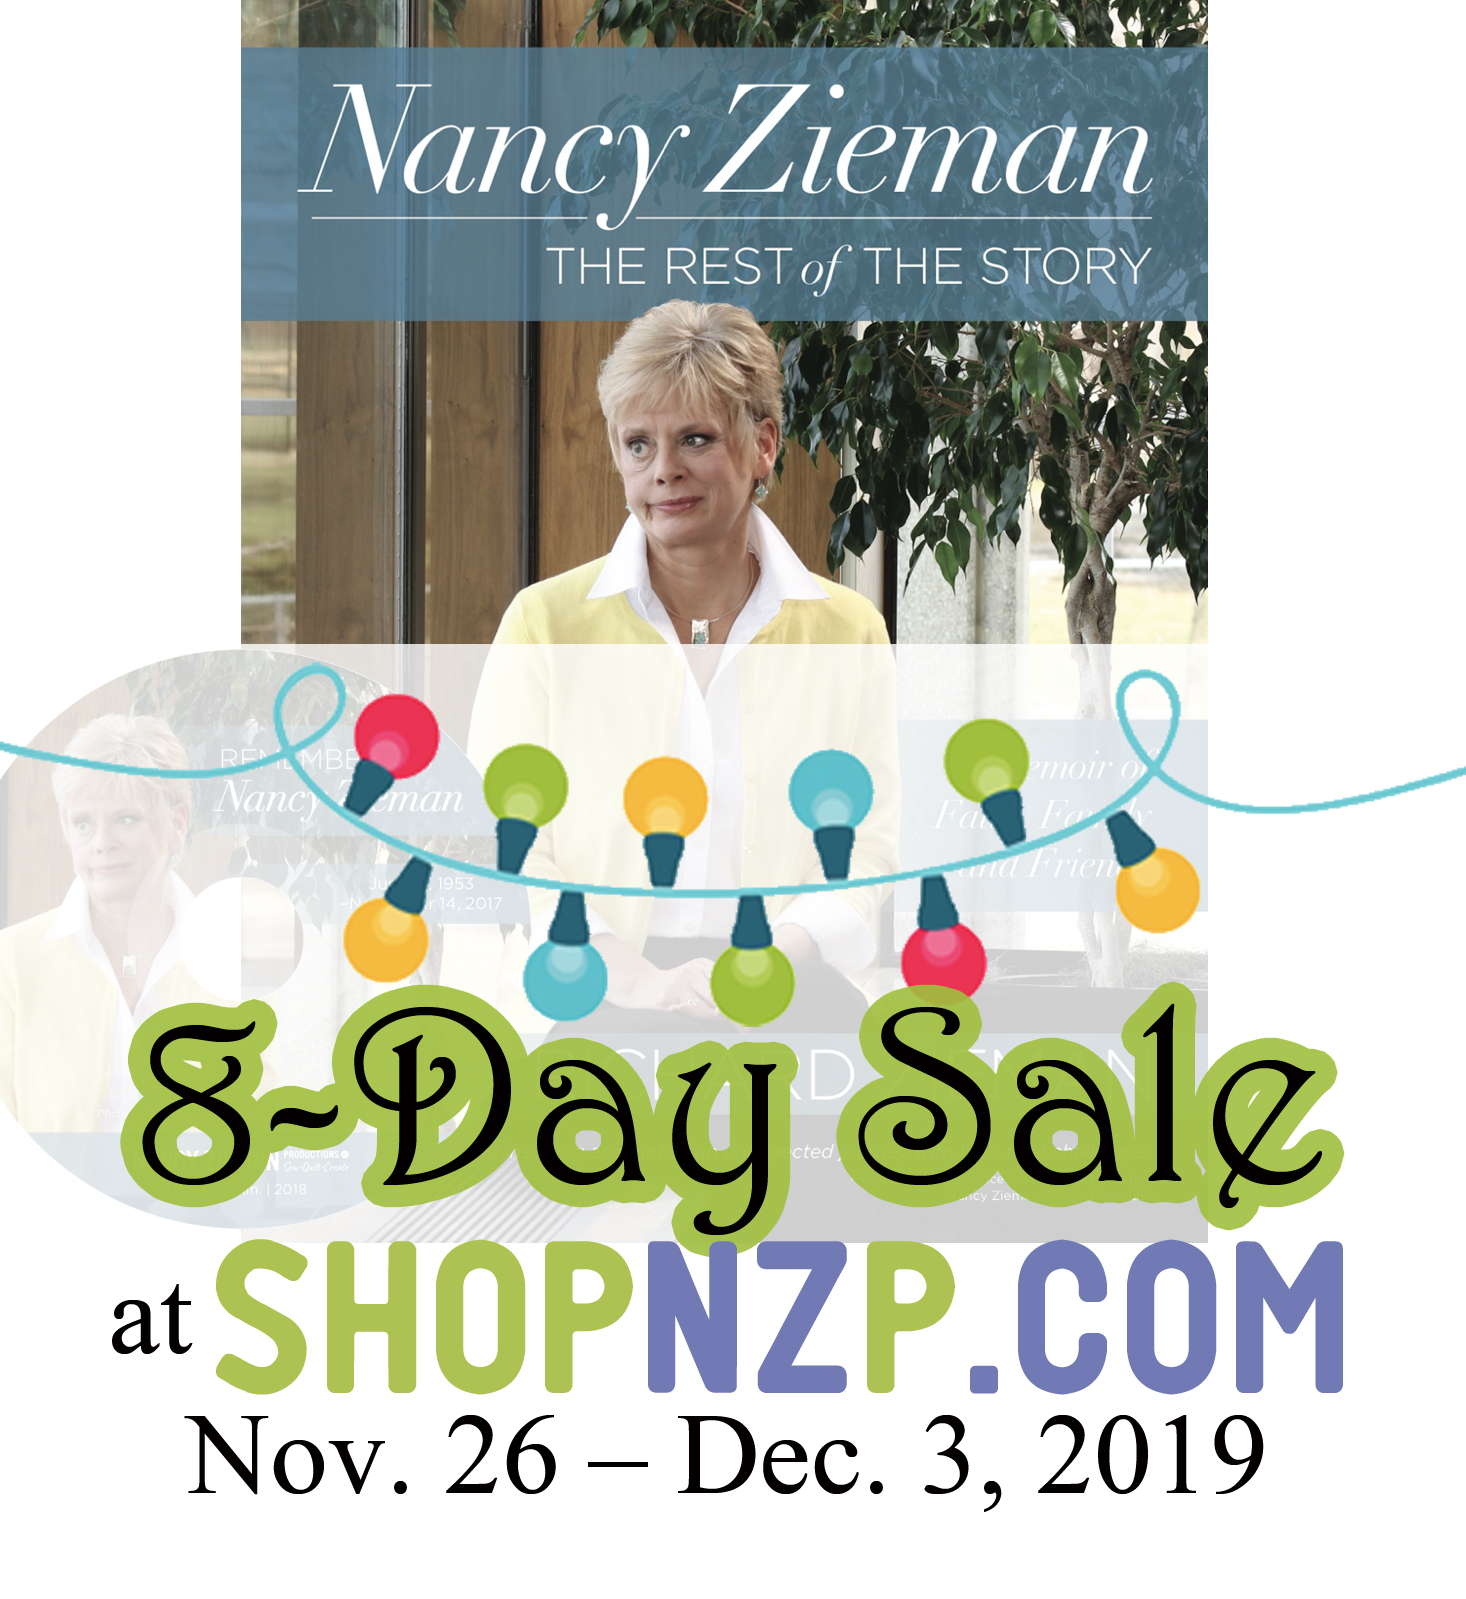 Books and Patterns by Nancy Zieman Productions at shopnzp.com